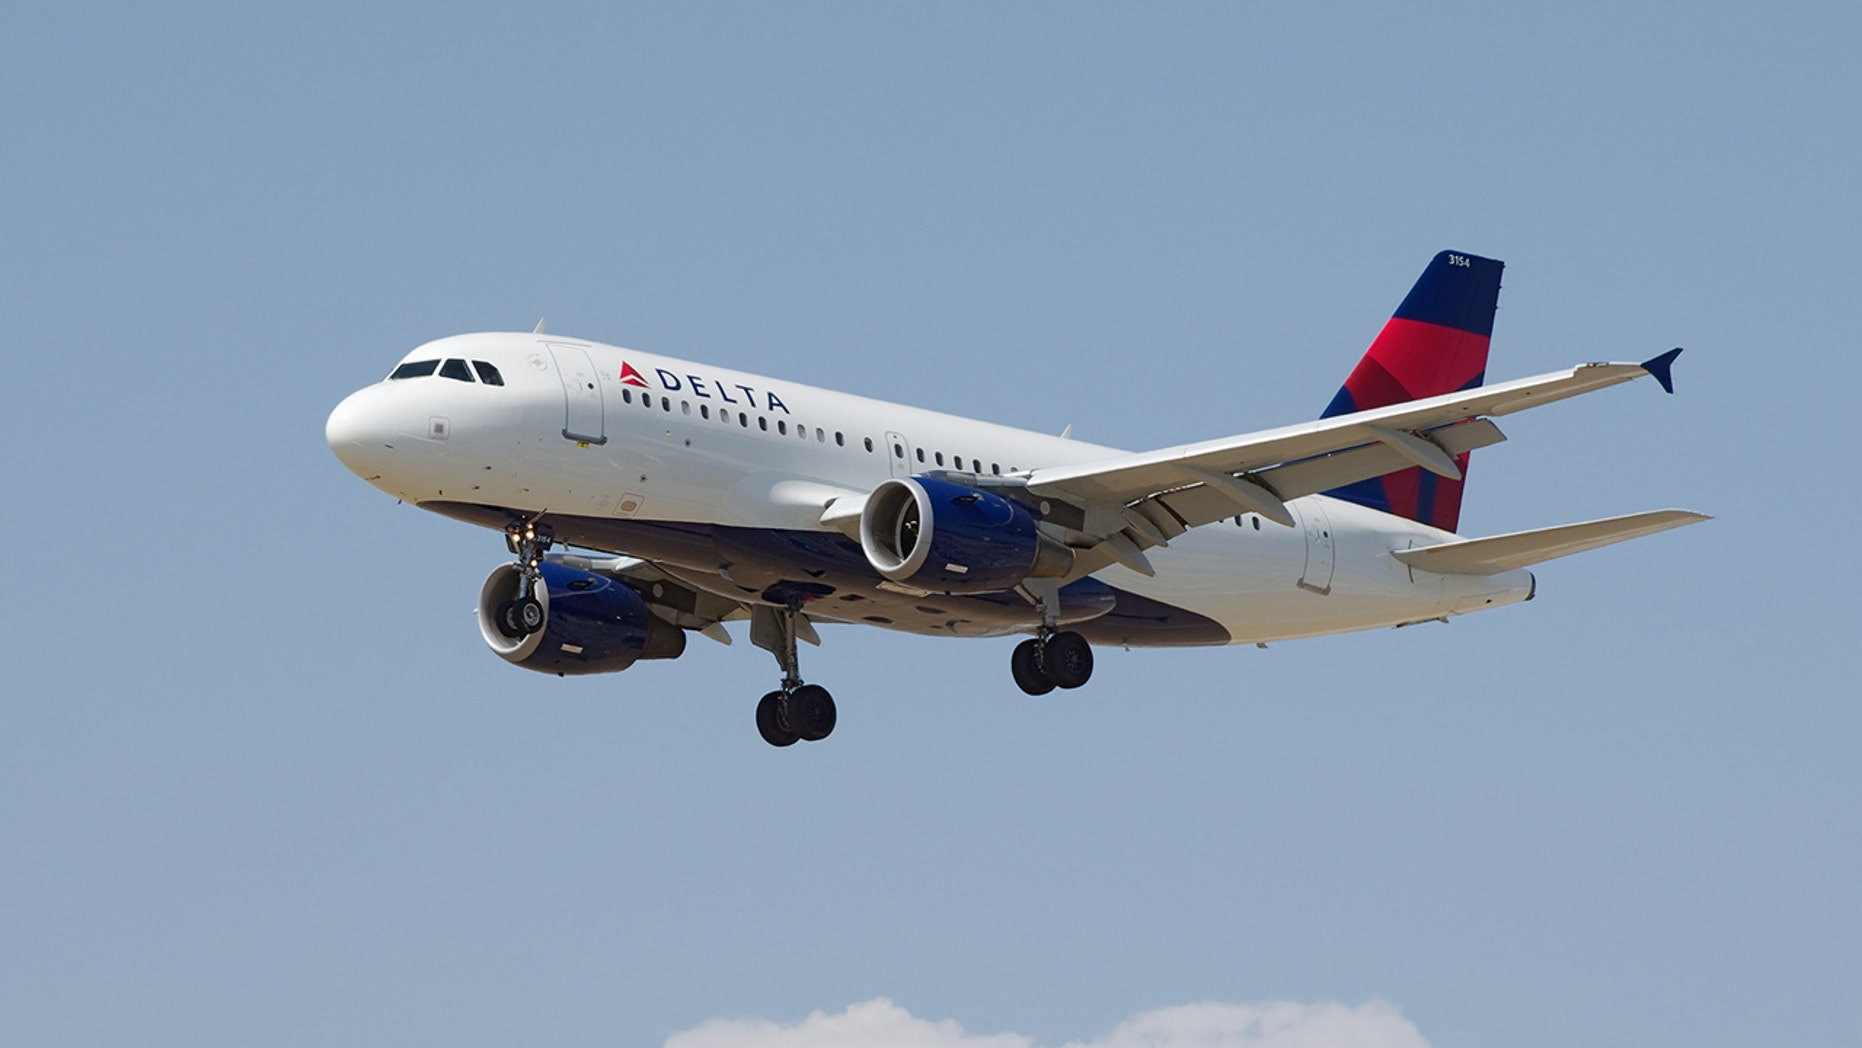 Delta Airlines Airbus A319 in flight shortly before landing at the Los Angeles Airport (LAX).